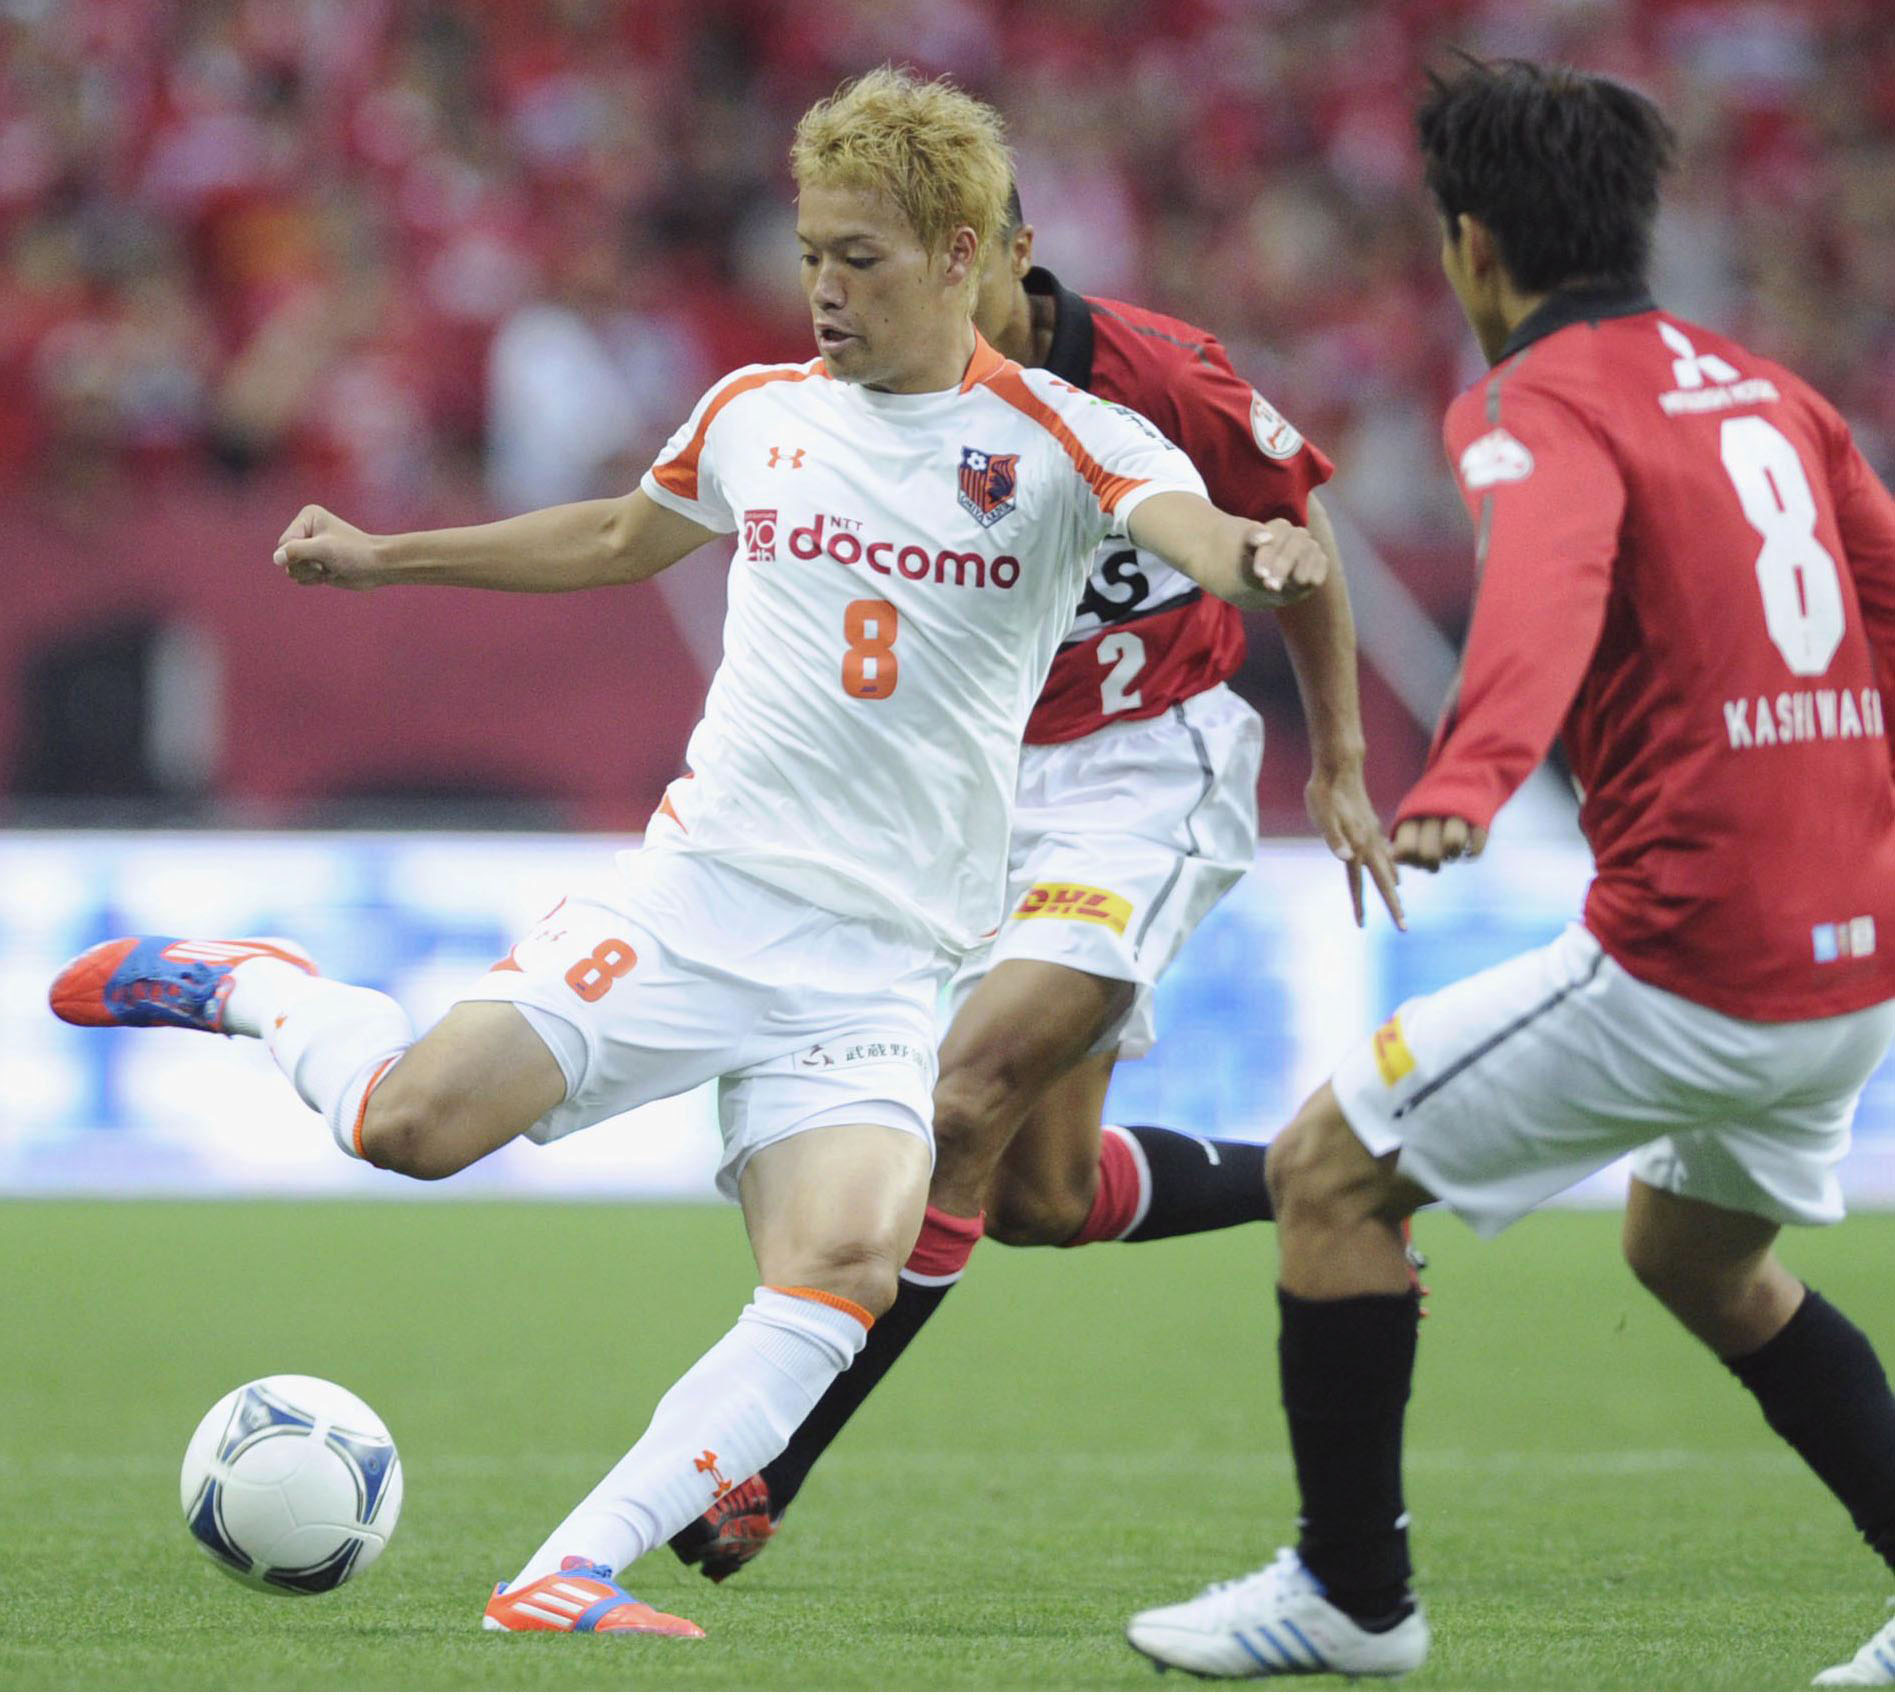 Ambitious: Omiya Ardija midfielder Keigo Higashi, a member of Japan's Olympic team, hopes to play abroad after helping the club become a contender in the J. League. | KYODO